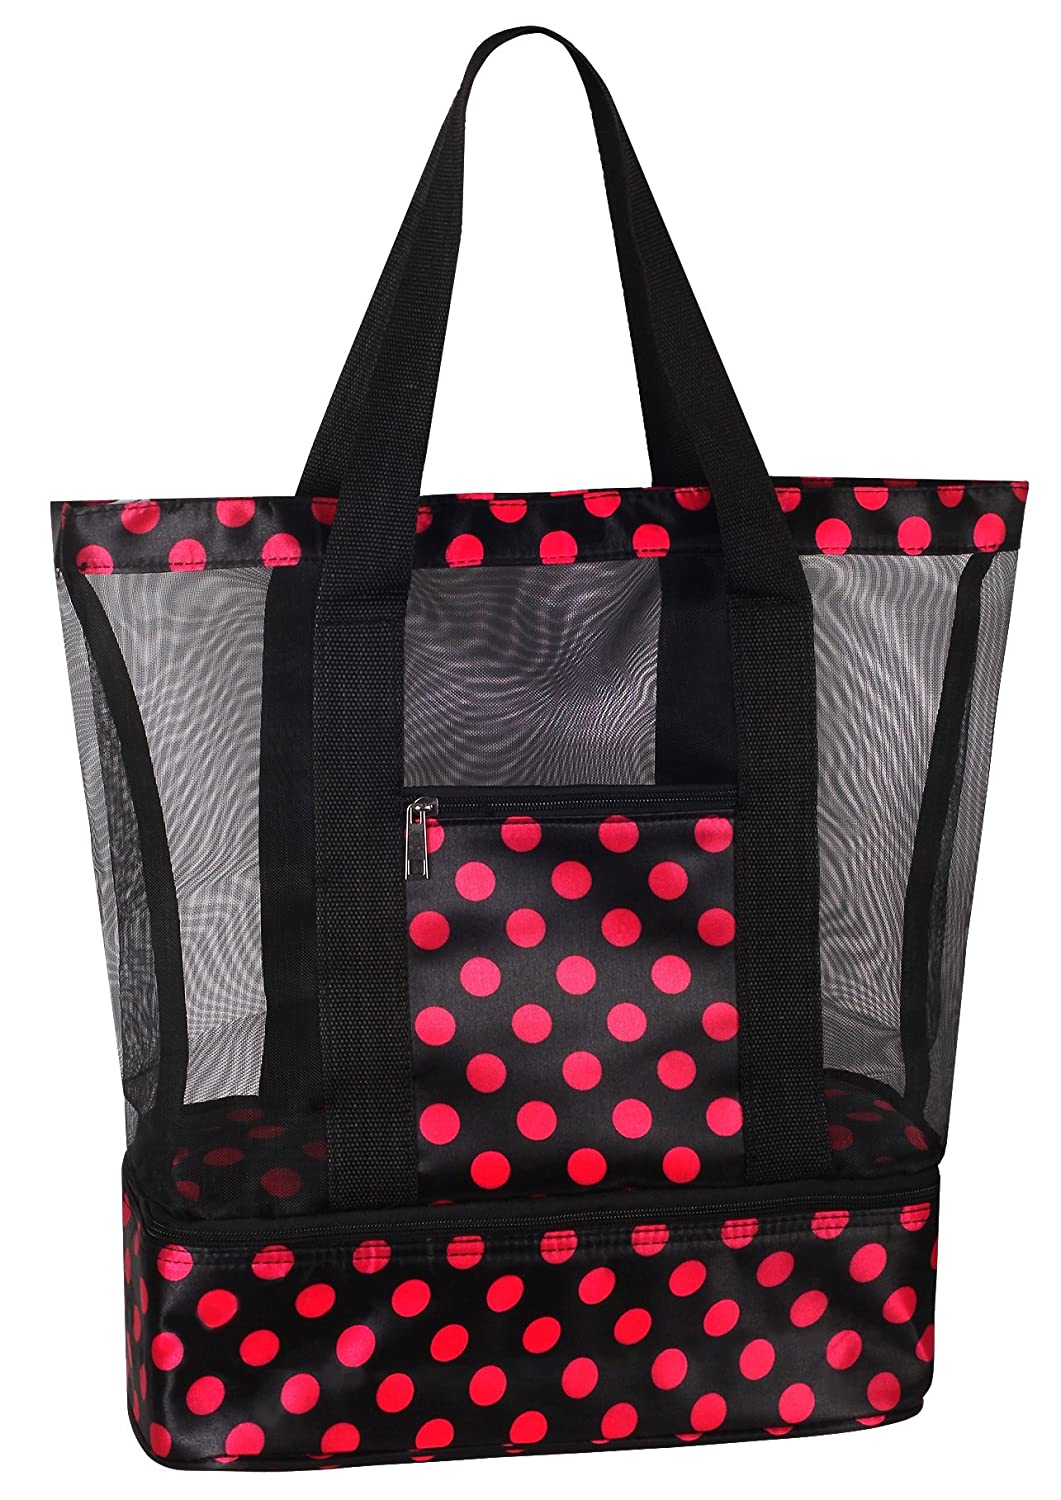 46dc3521ad4f Mesh Beach Tote Bag with Insulated Picnic Cooler Compartment (Black/Pink)